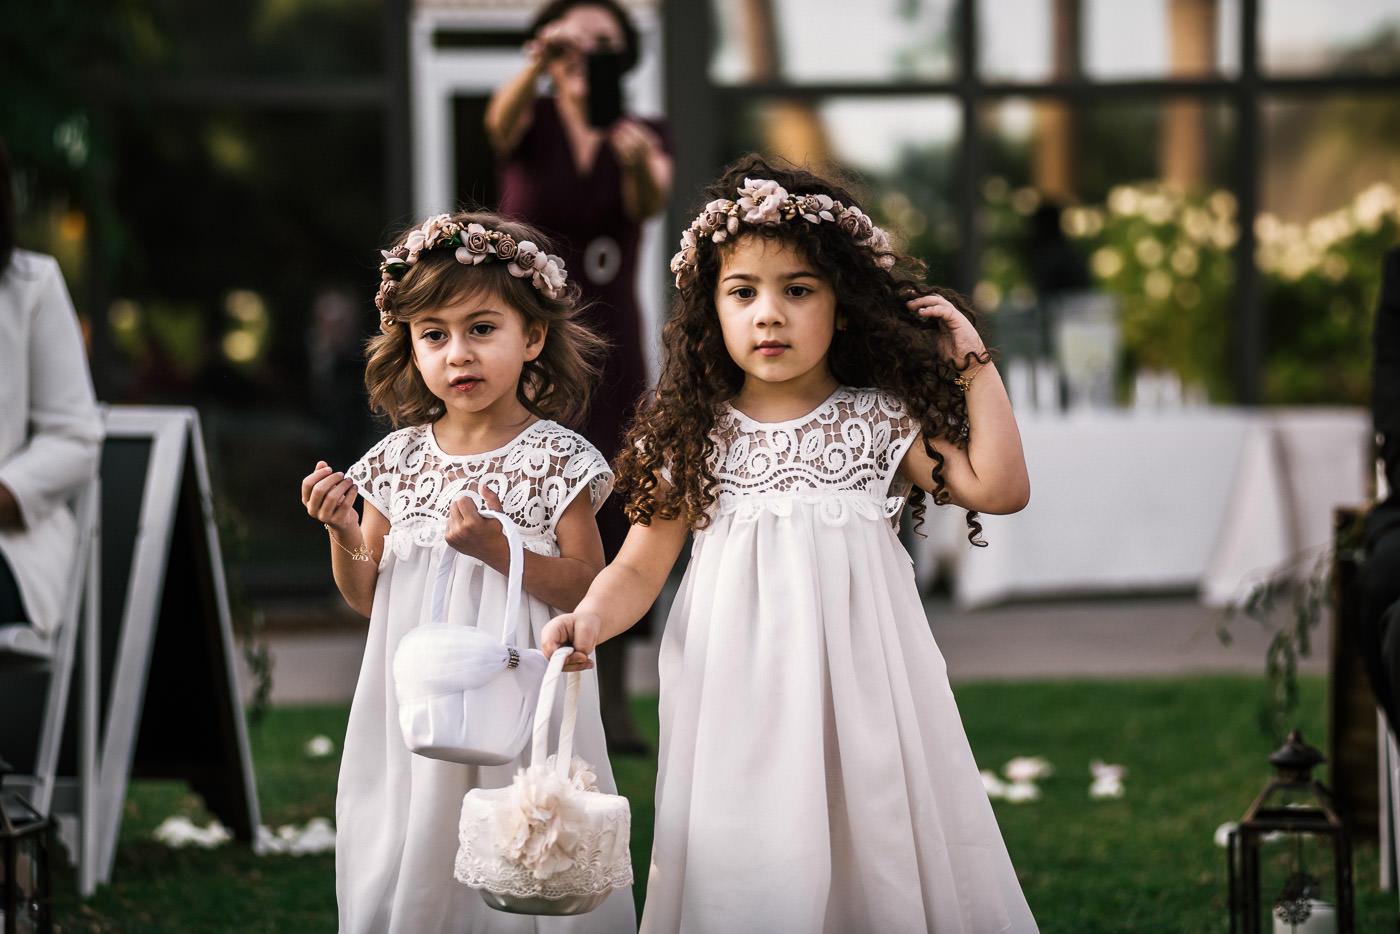 Two adorable flower girls walk down the aisle at Knollwood Country Club wedding.